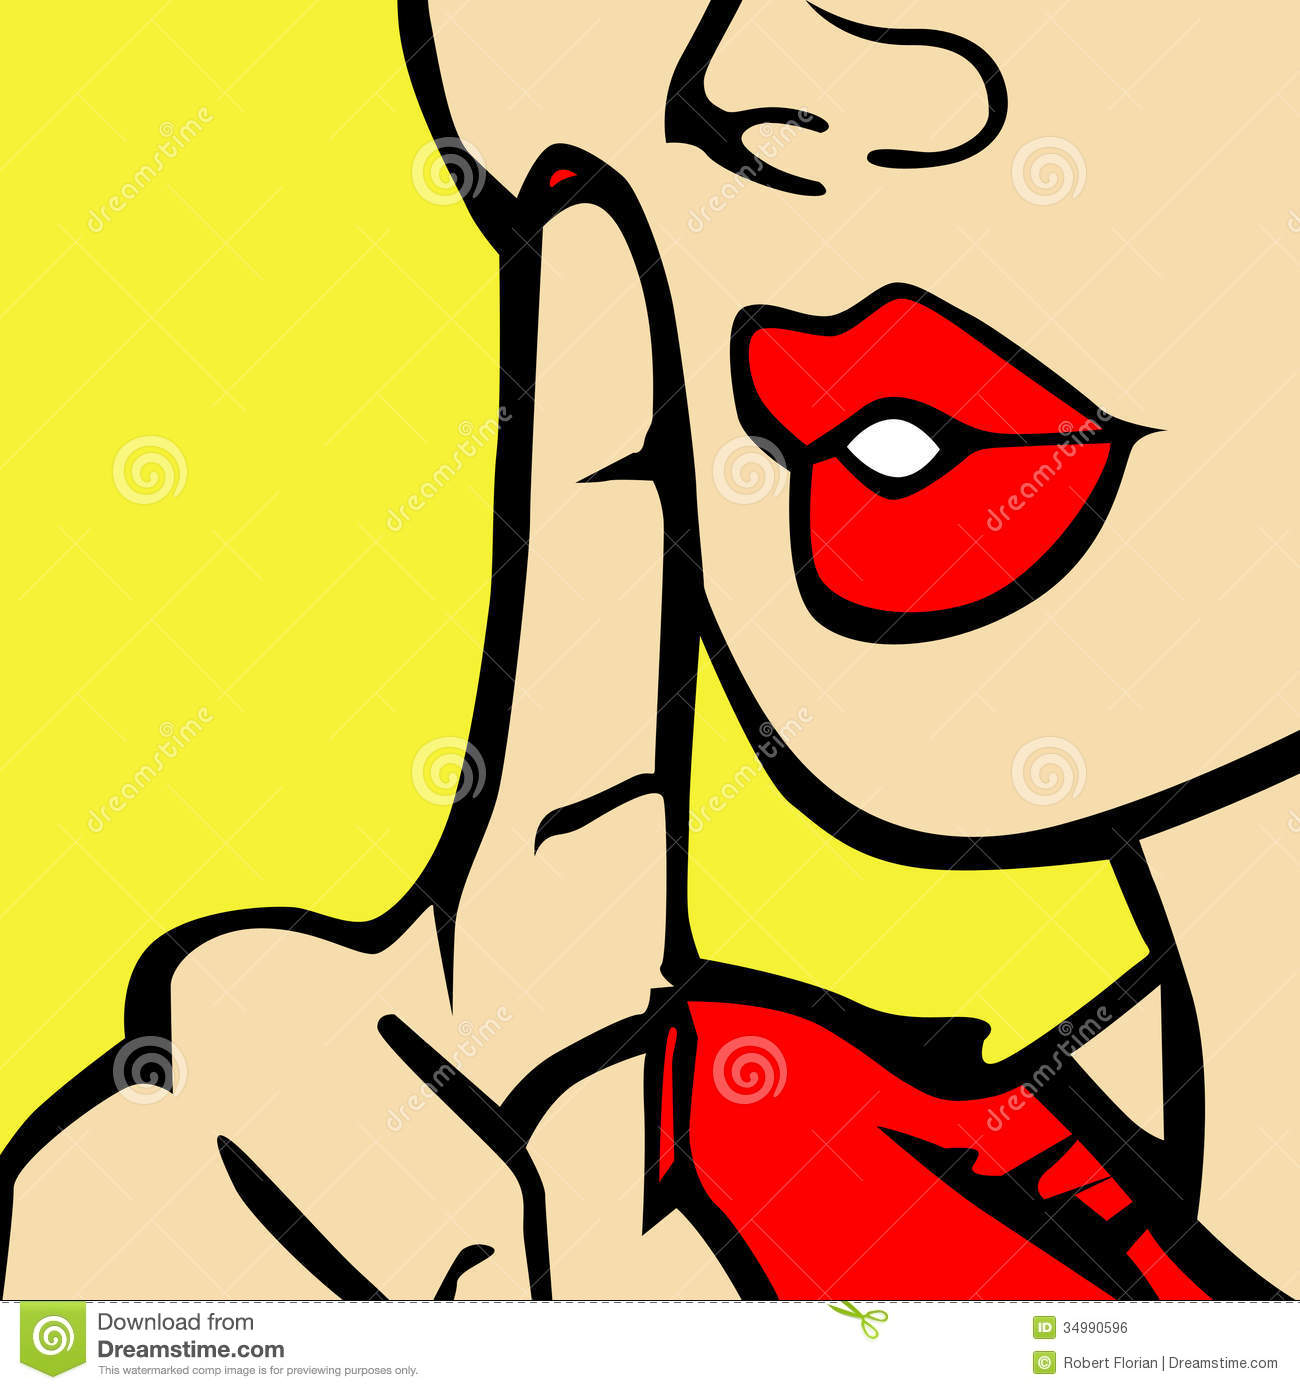 Shhh lips clipart image black and white download Silence Clipart | Clipart Panda - Free Clipart Images image black and white download